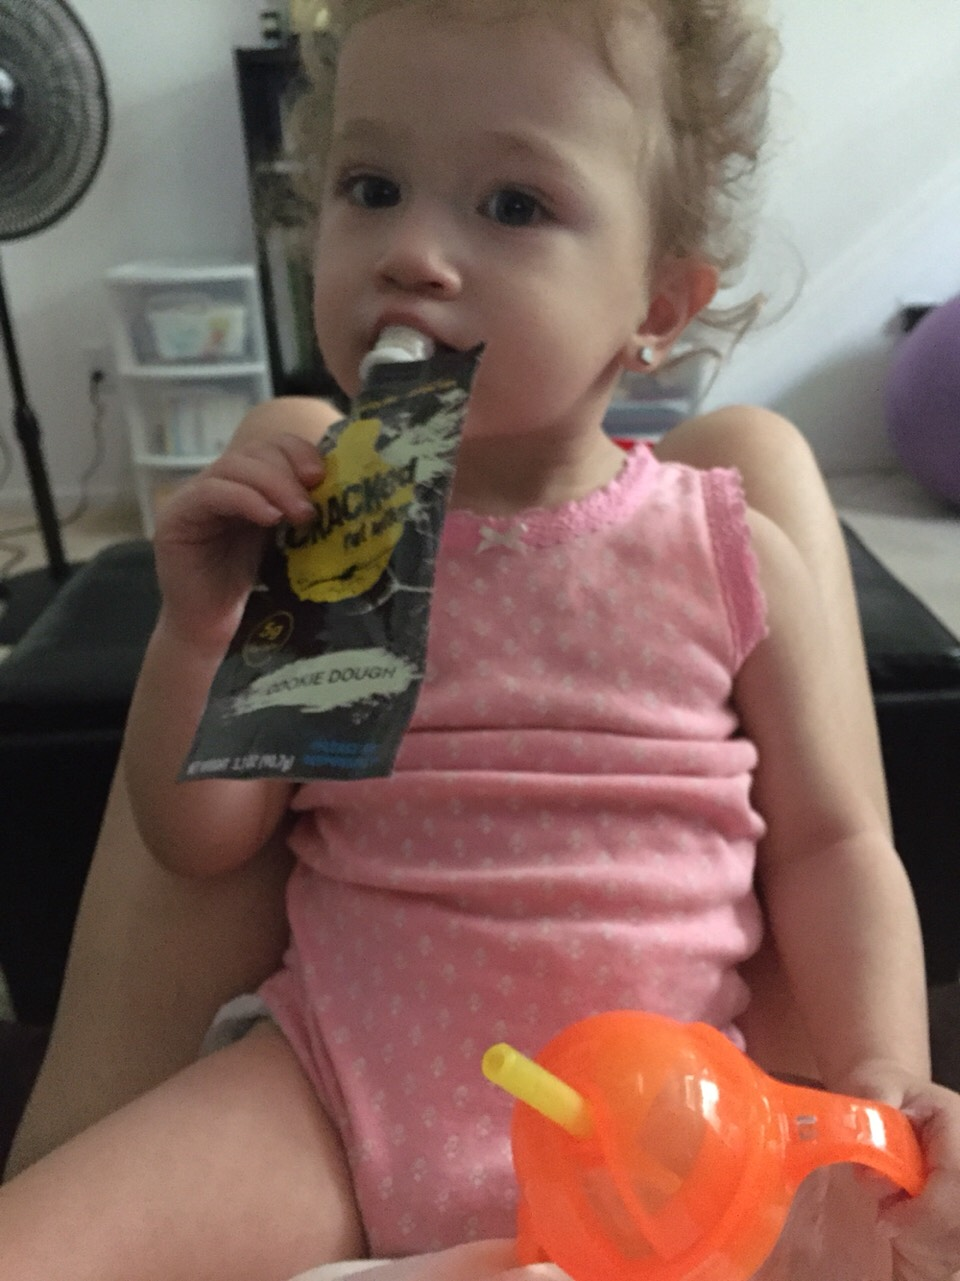 My daughter loves cracked nut butter 😊